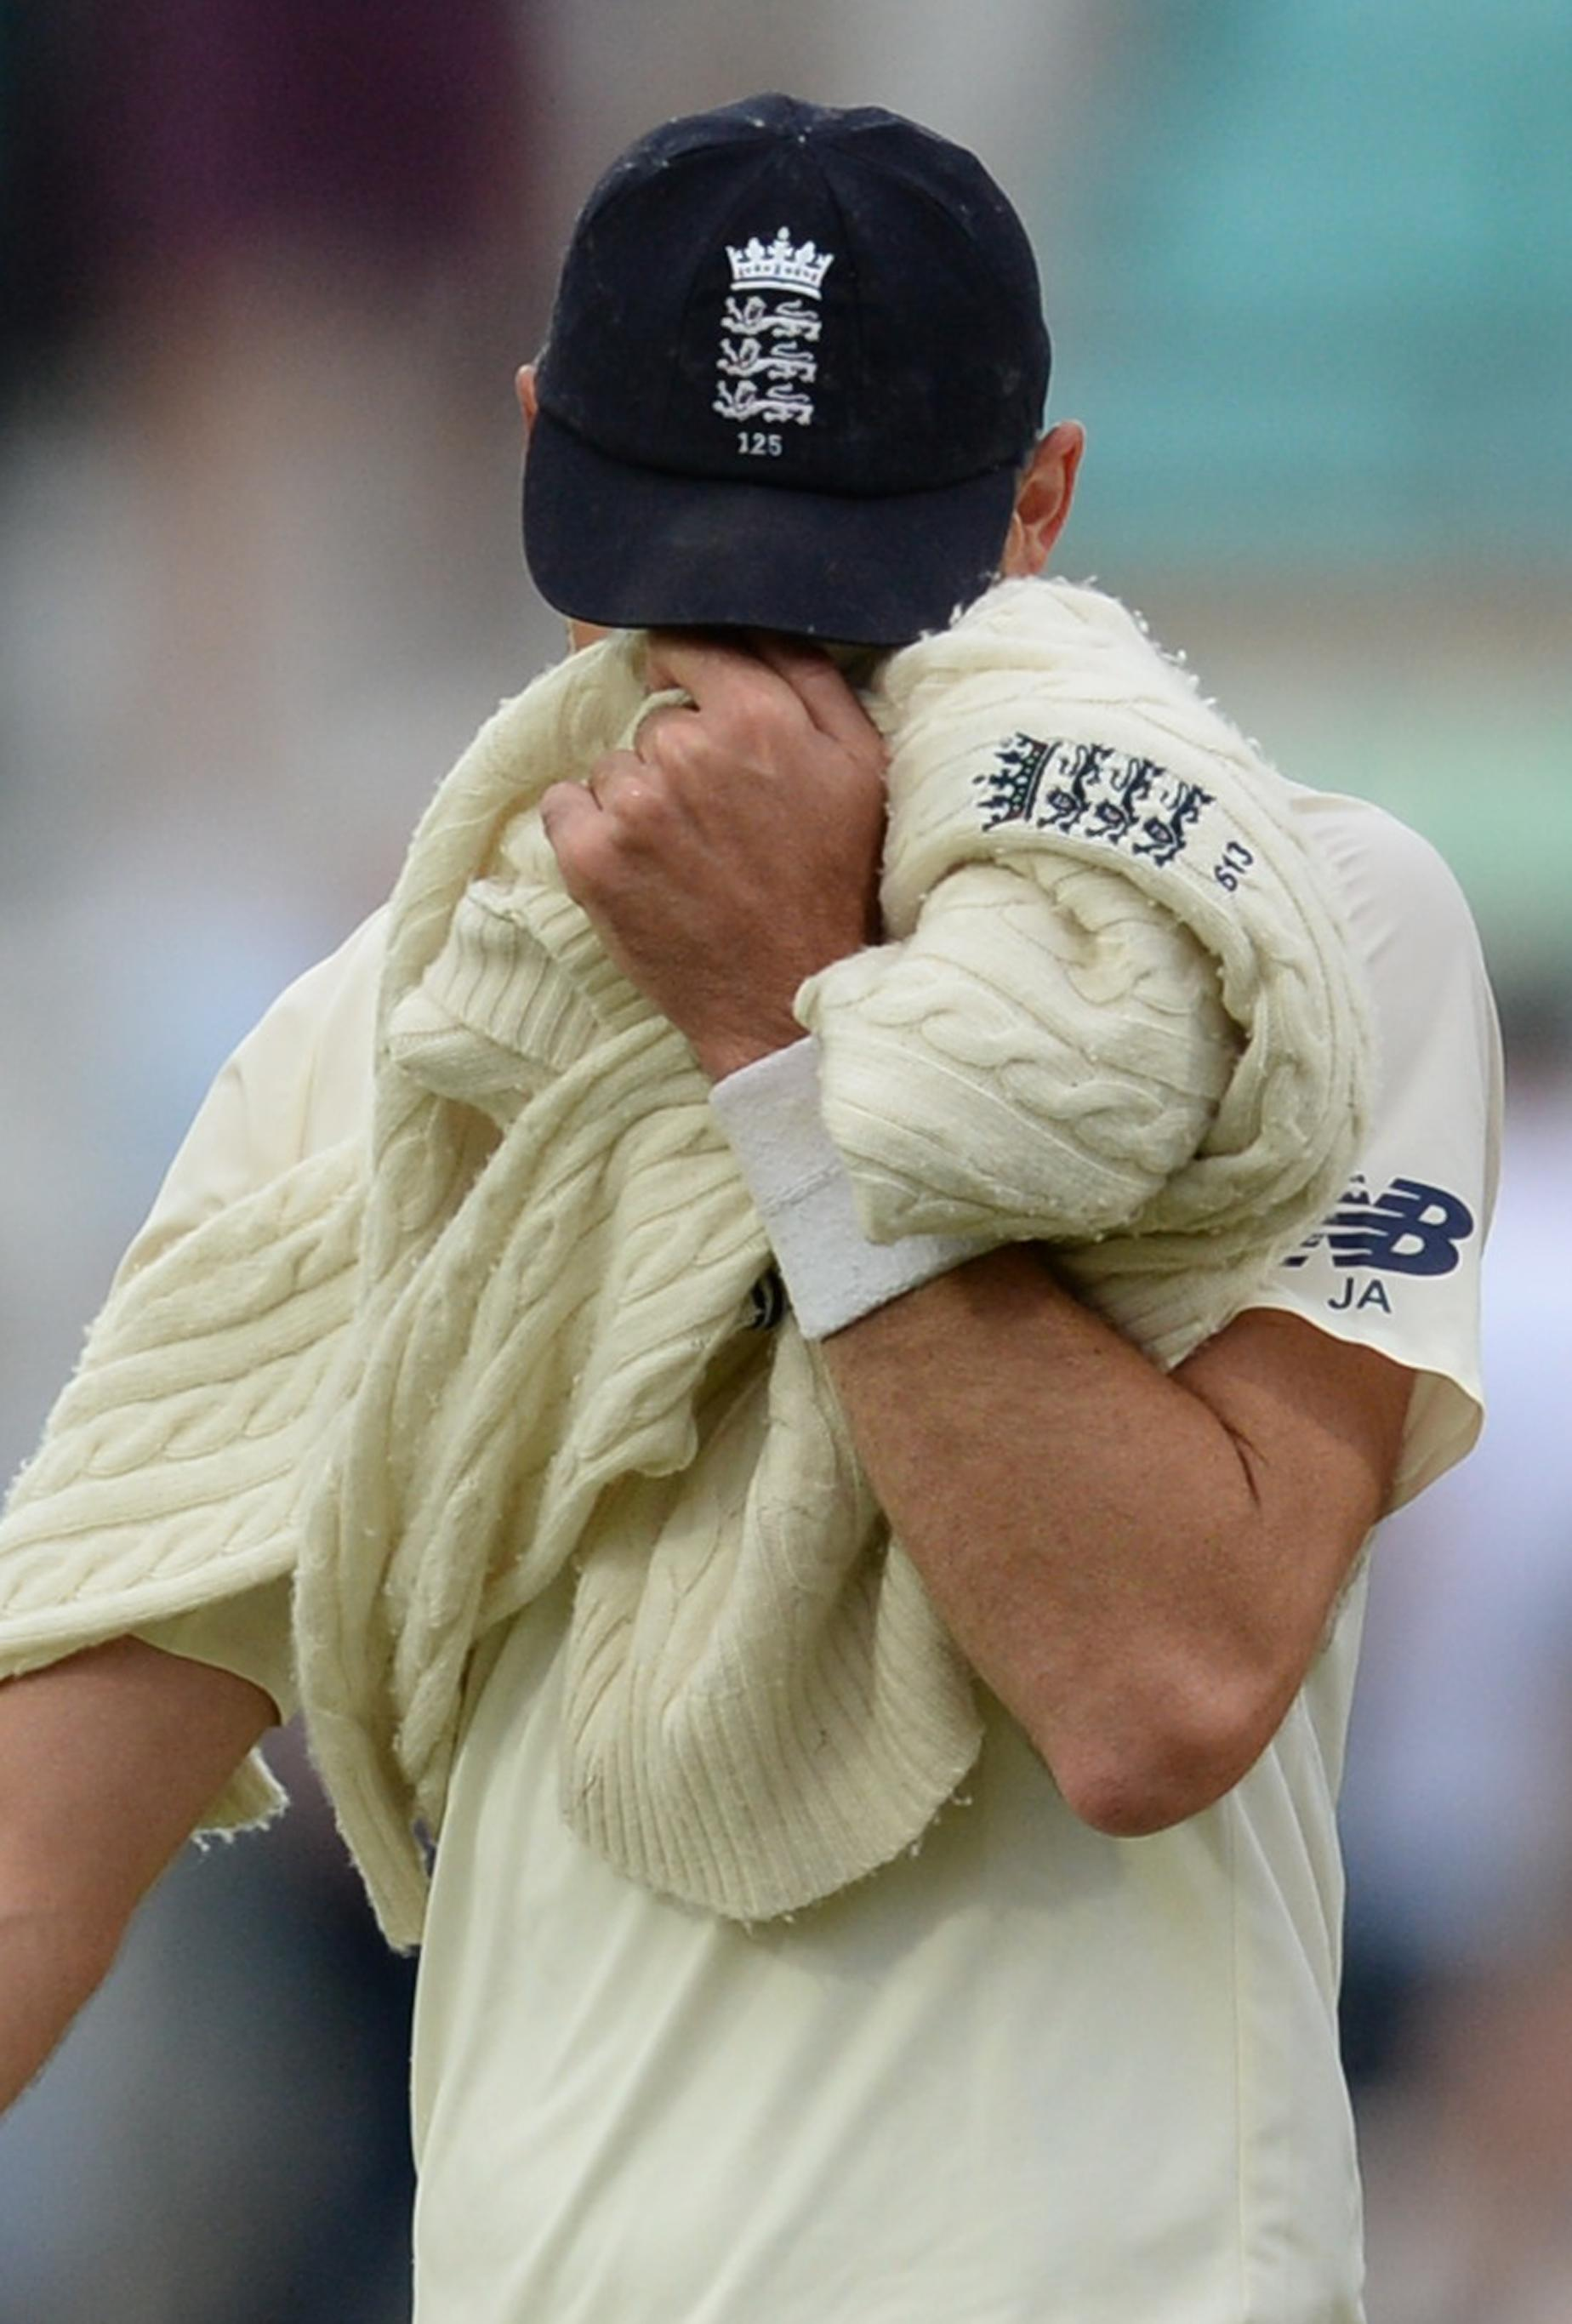 James Anderson admits he had a tear in his eye after breaking the Test record - but says he was mainly relieved that batsman Alastair Cook bowed out in style